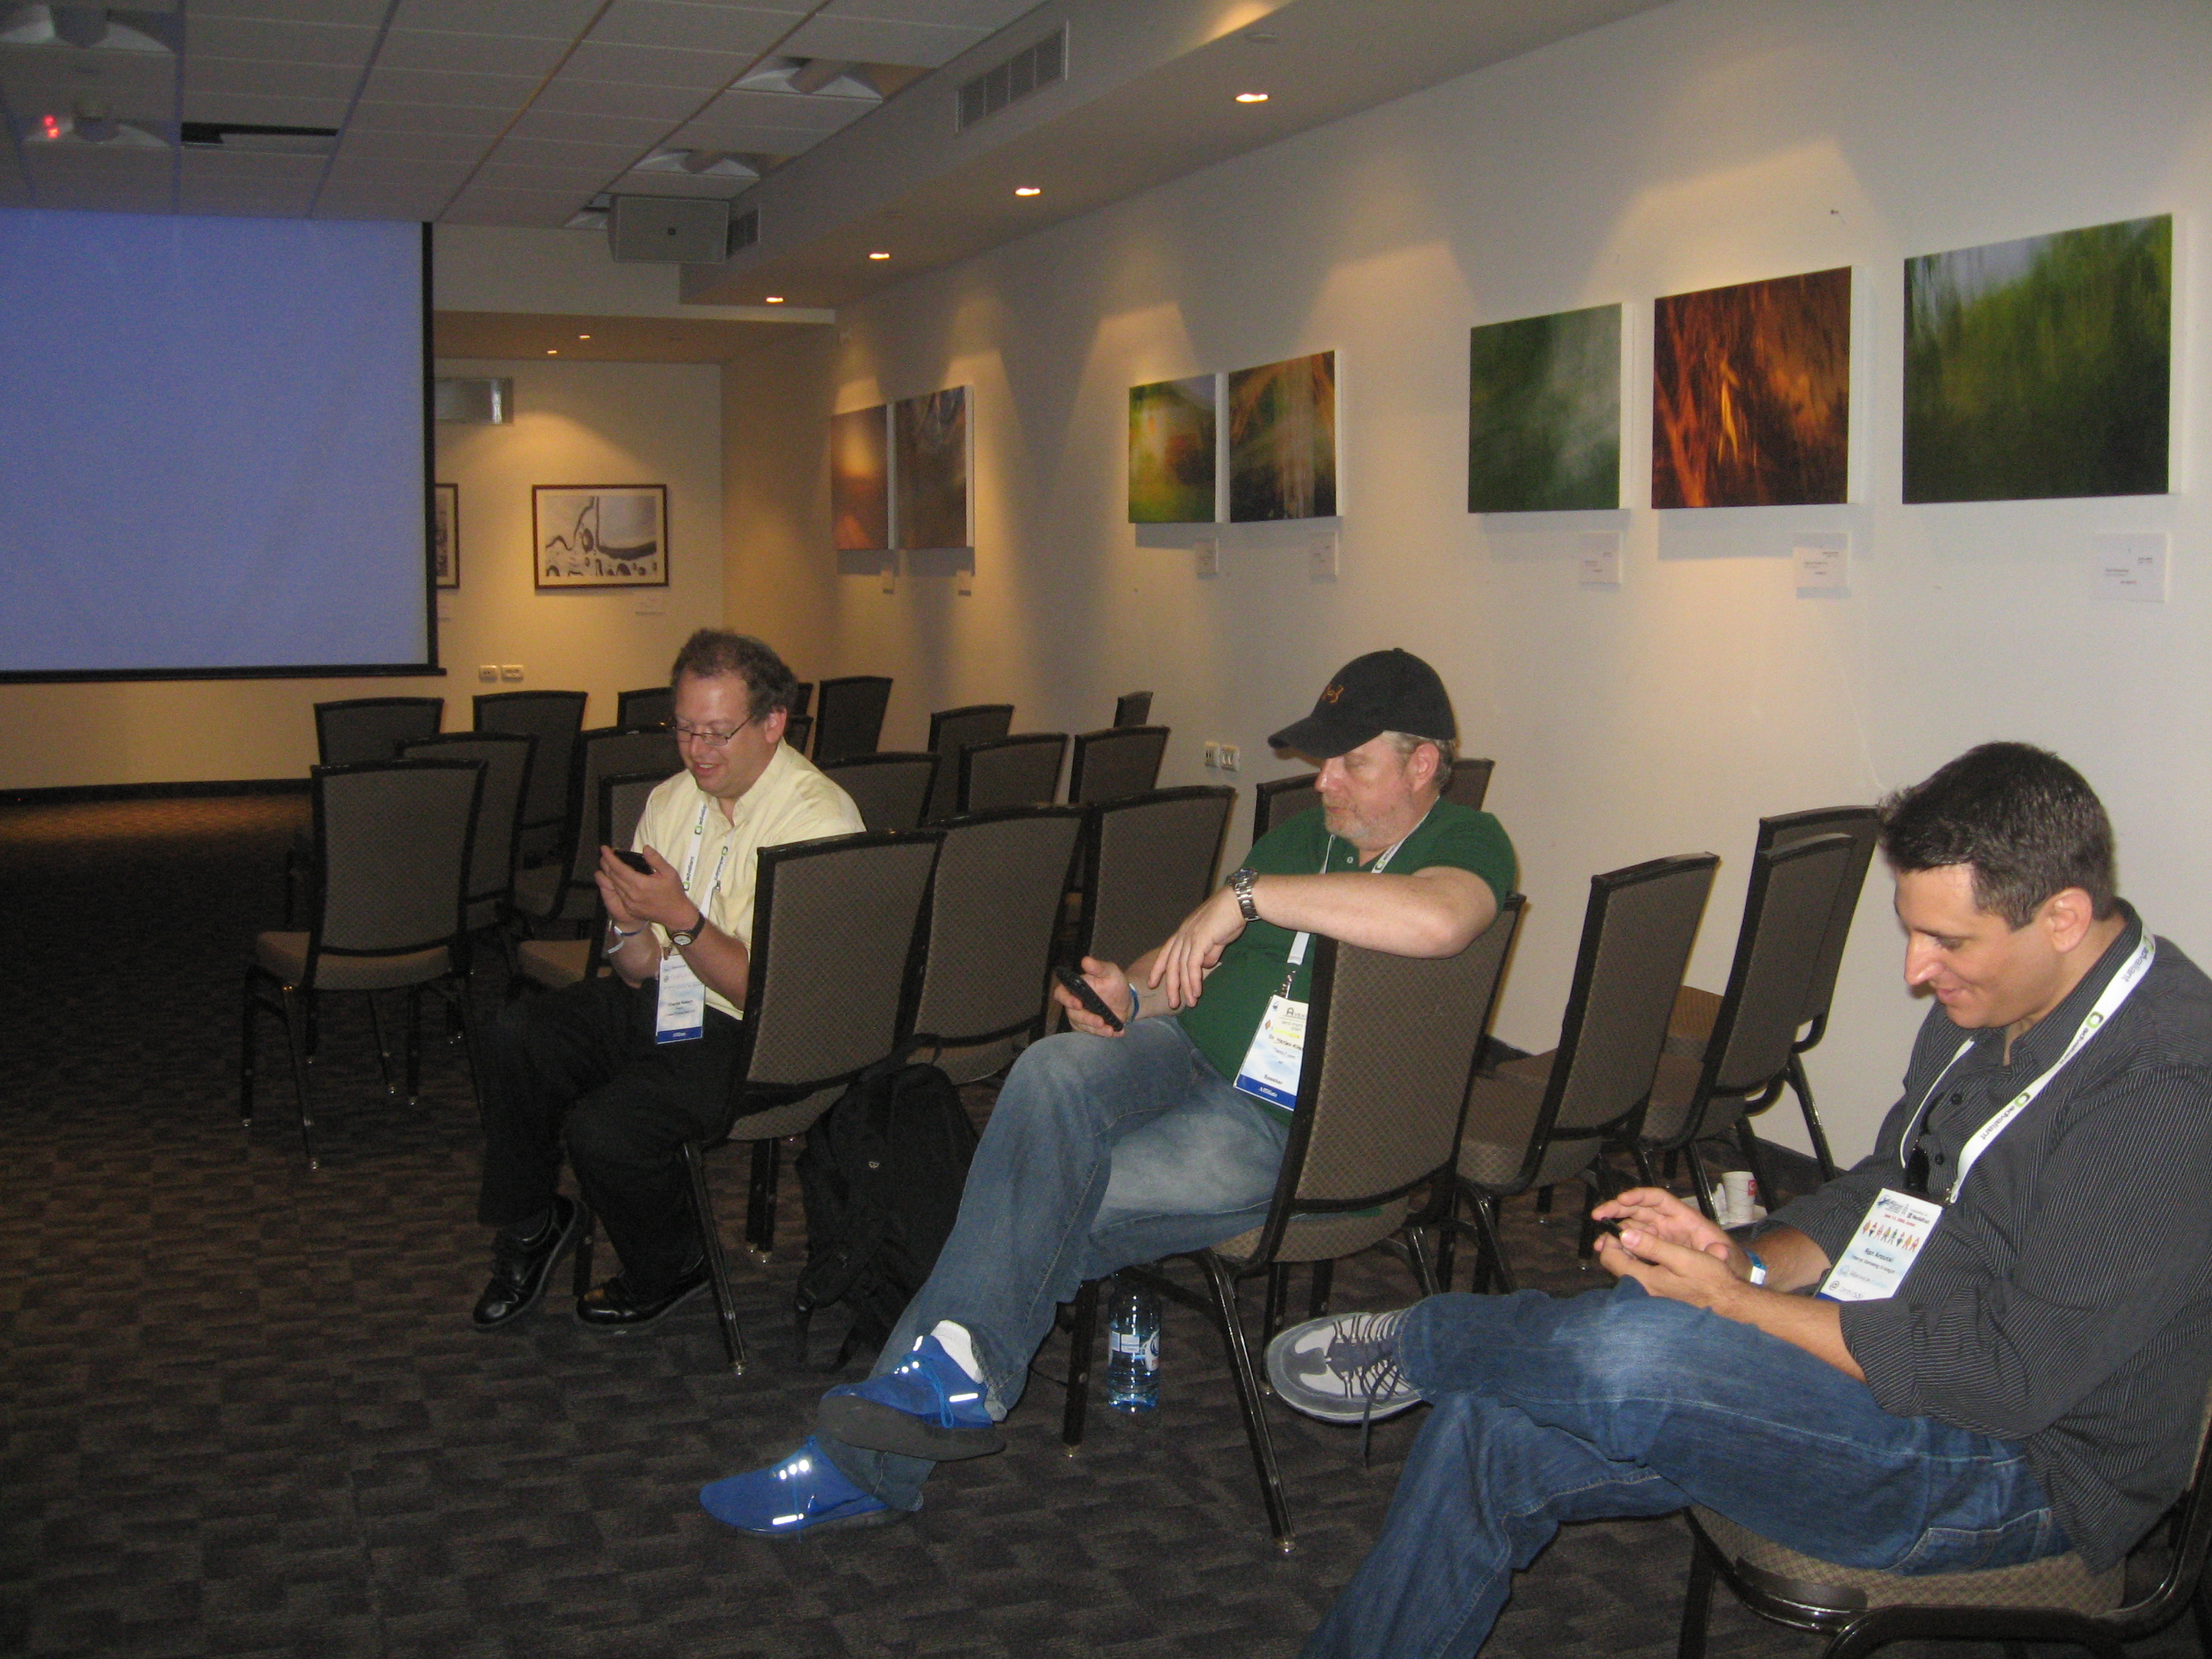 During the Drill: Charlie Kalech, Harlan Kilstein, and Ran Aroussi on Crackberry, Affilicon '09